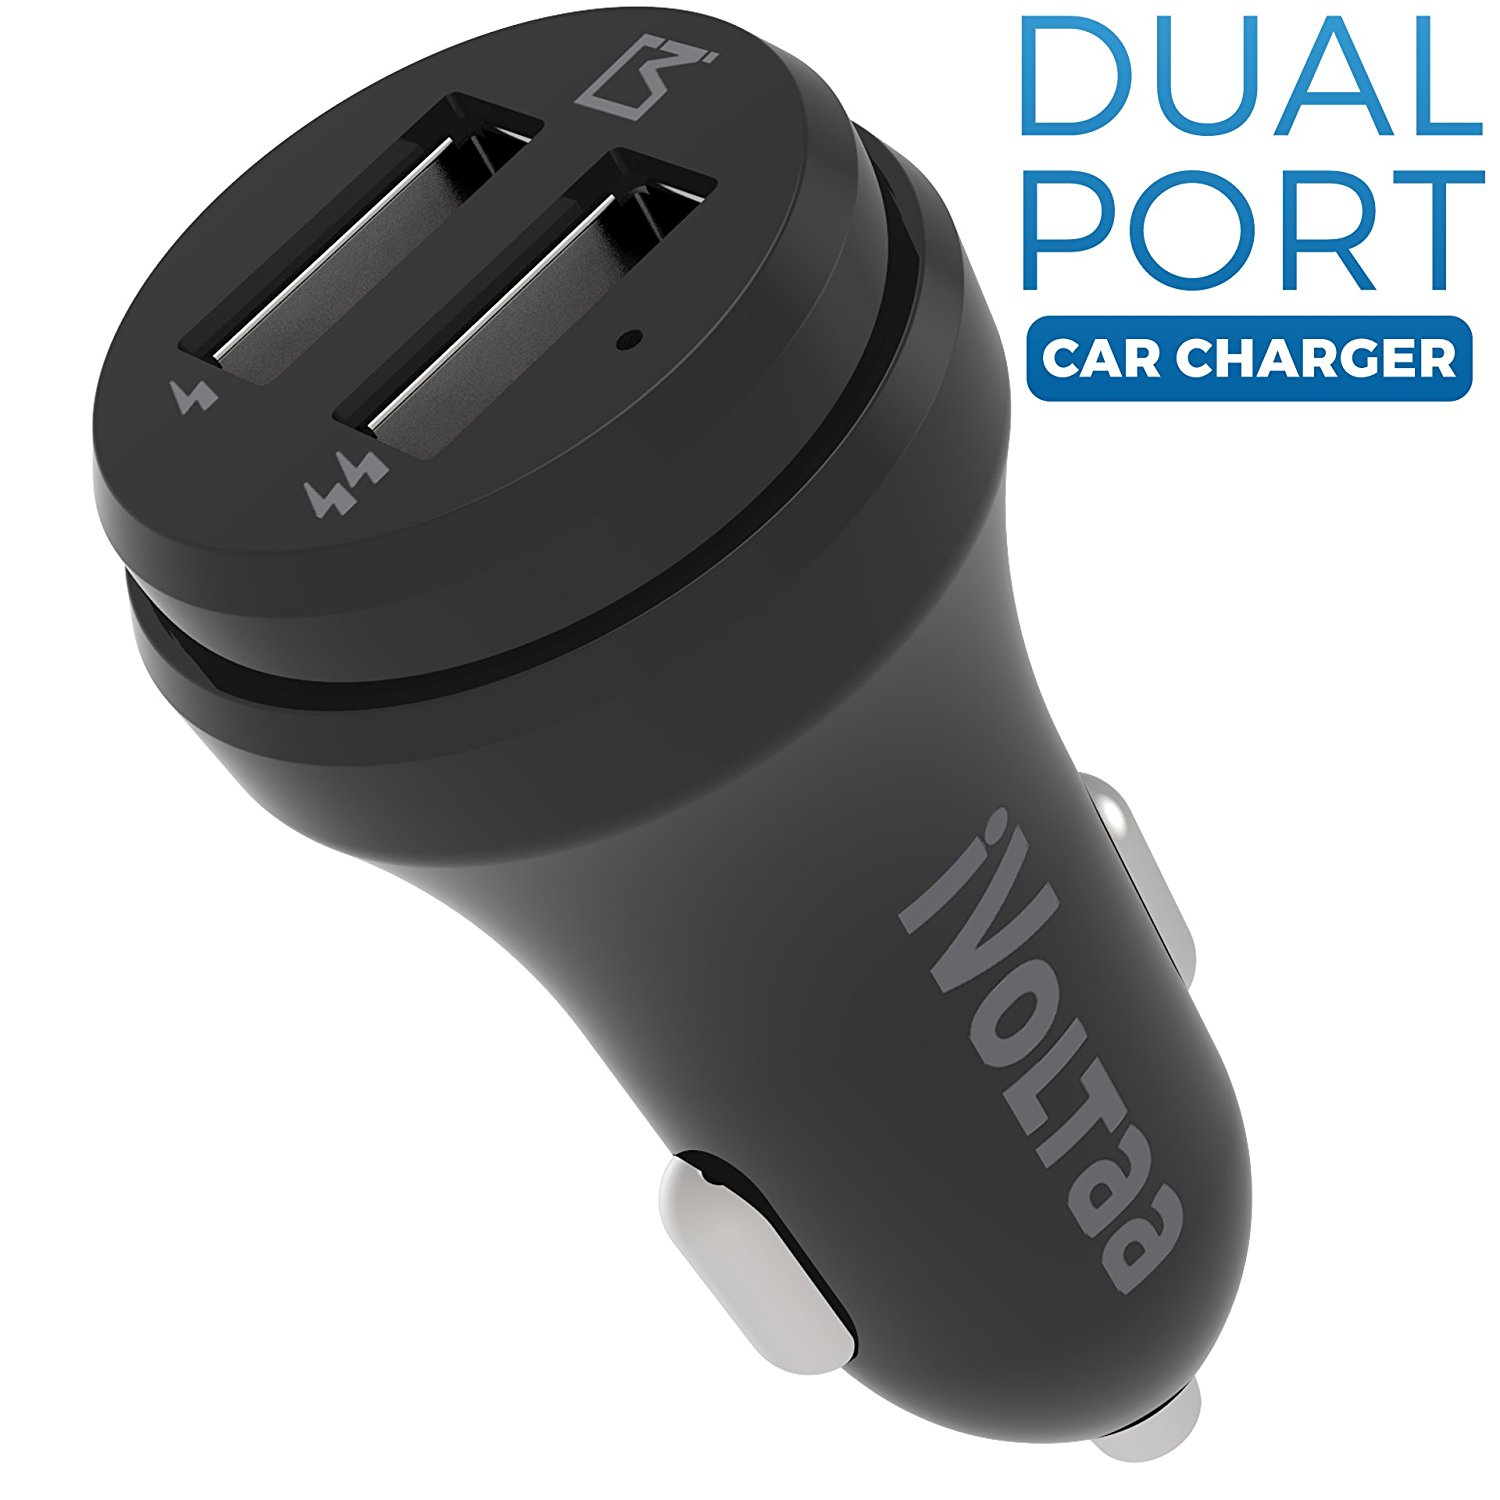 iVoltaa 2.4A Dual Port Car Charger With 1 year warranty